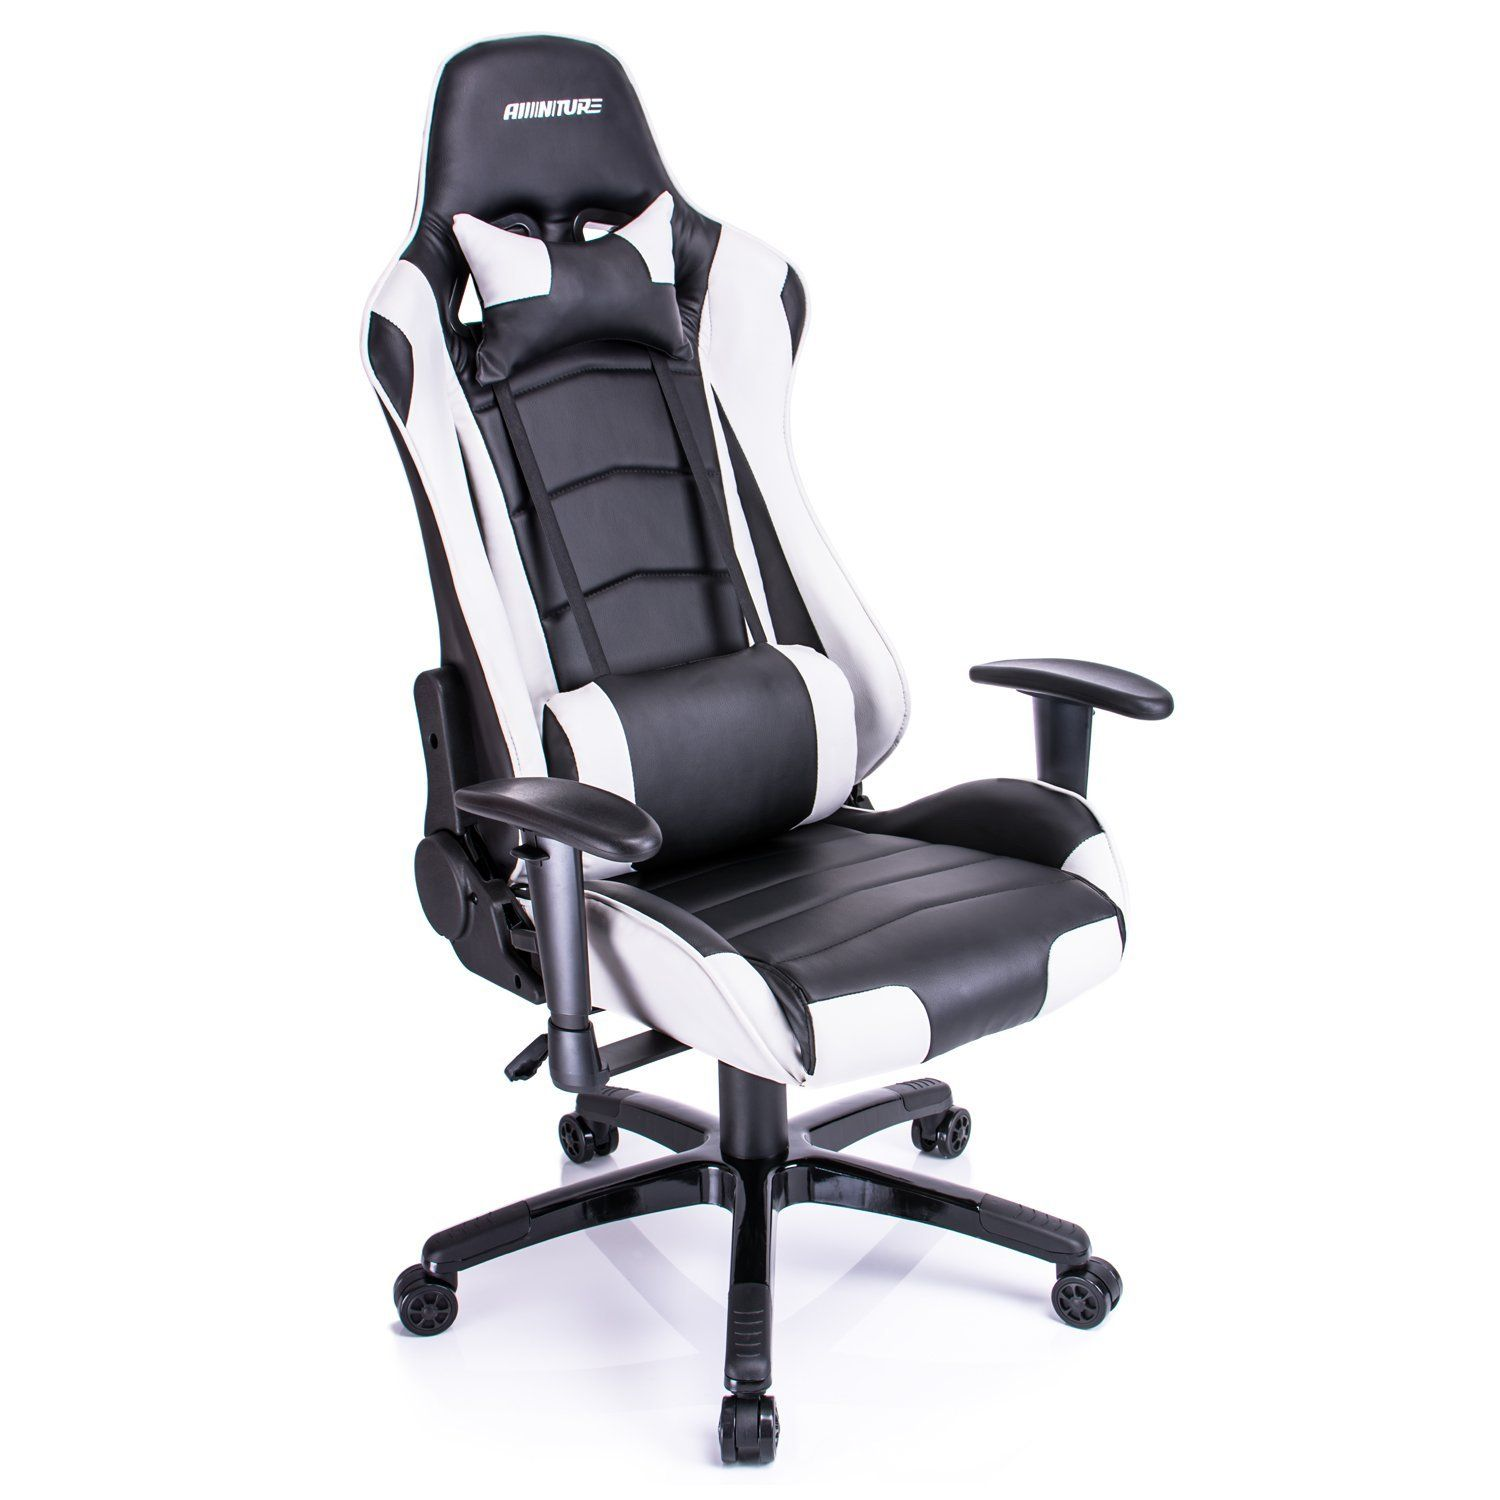 Ultimate Computer Gaming Chair Amazon Aminitrue Highback Gaming Chair Racing Style